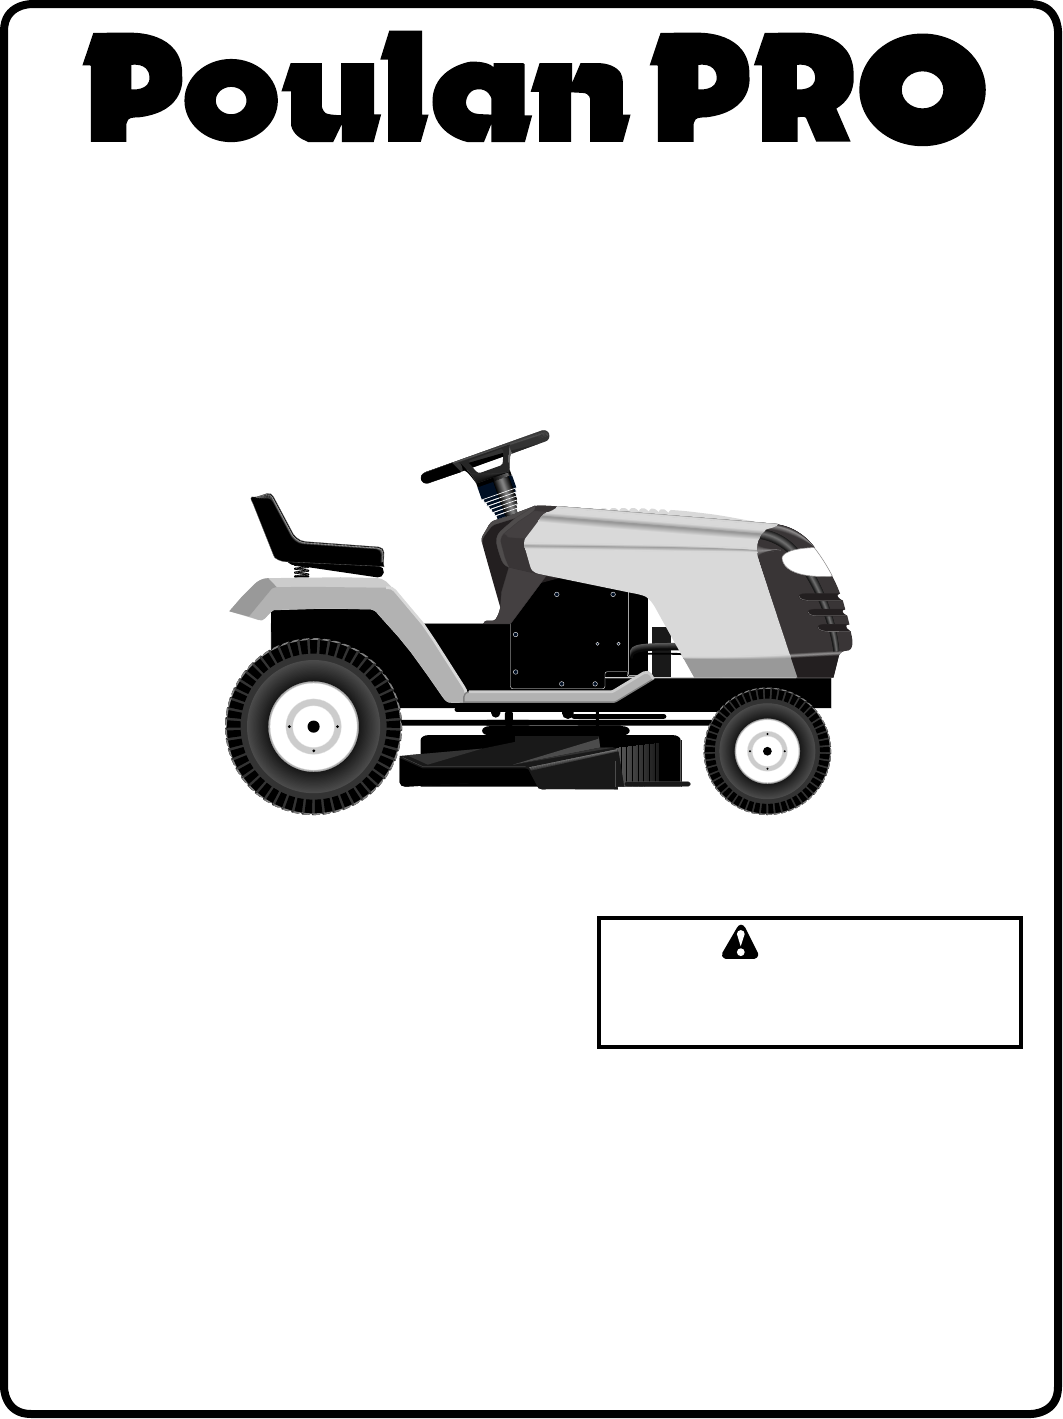 Poulan Pr20h42sta 2003 08 Owners Manual Om Tractors Wiring Diagram For Lawn Mower 173411 To The 0aa3db2e Afcd 4899 B298 061576fcd9d1